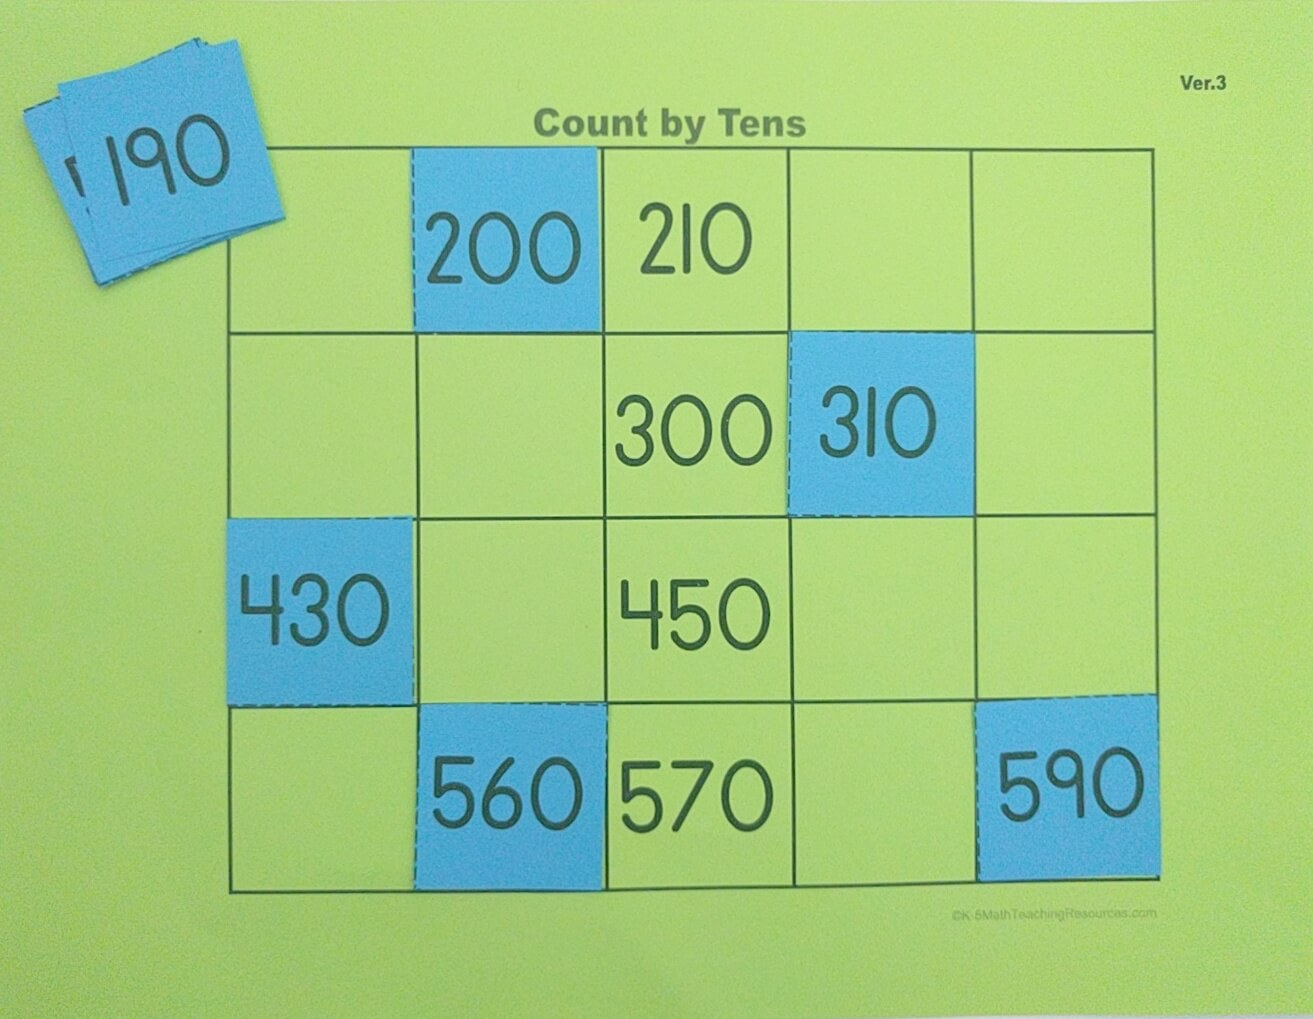 Skip count by tens within 1000 from any number